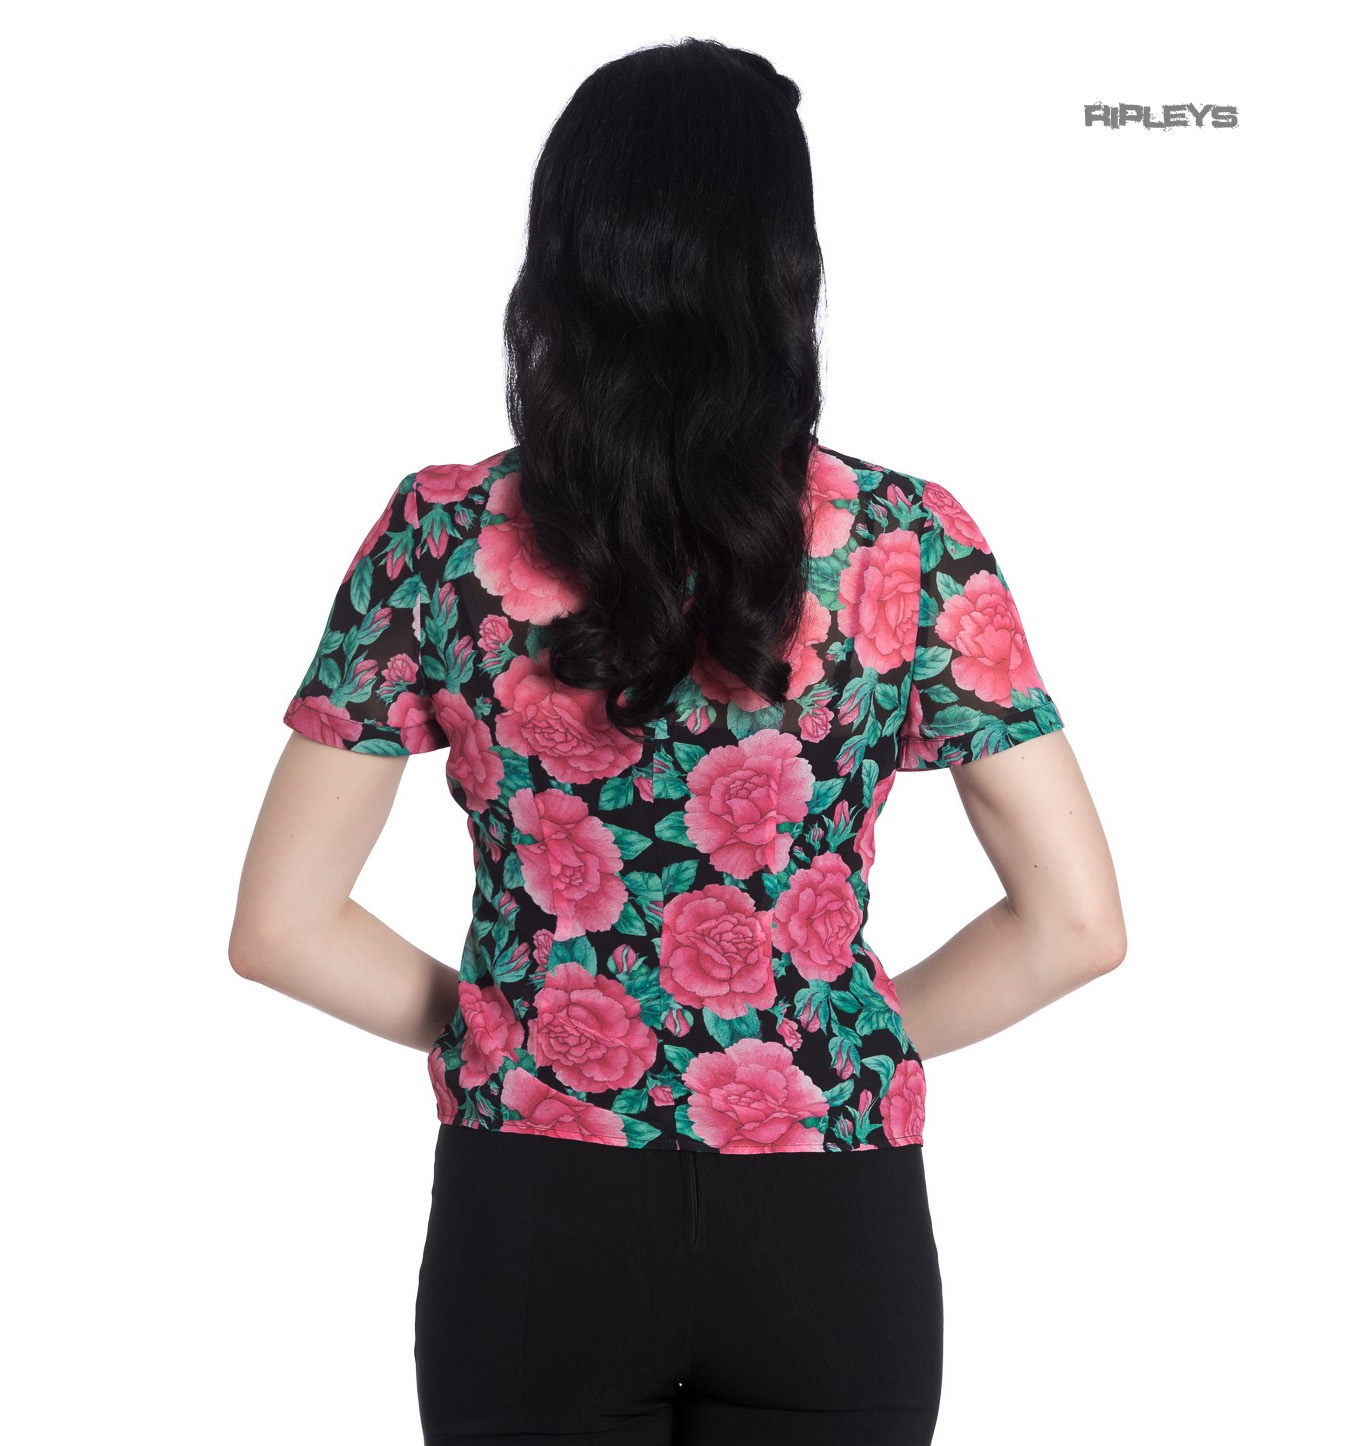 Hell-Bunny-Shirt-Top-Flowers-Roses-EDEN-ROSE-Black-Pink-Blouse-All-Sizes thumbnail 24